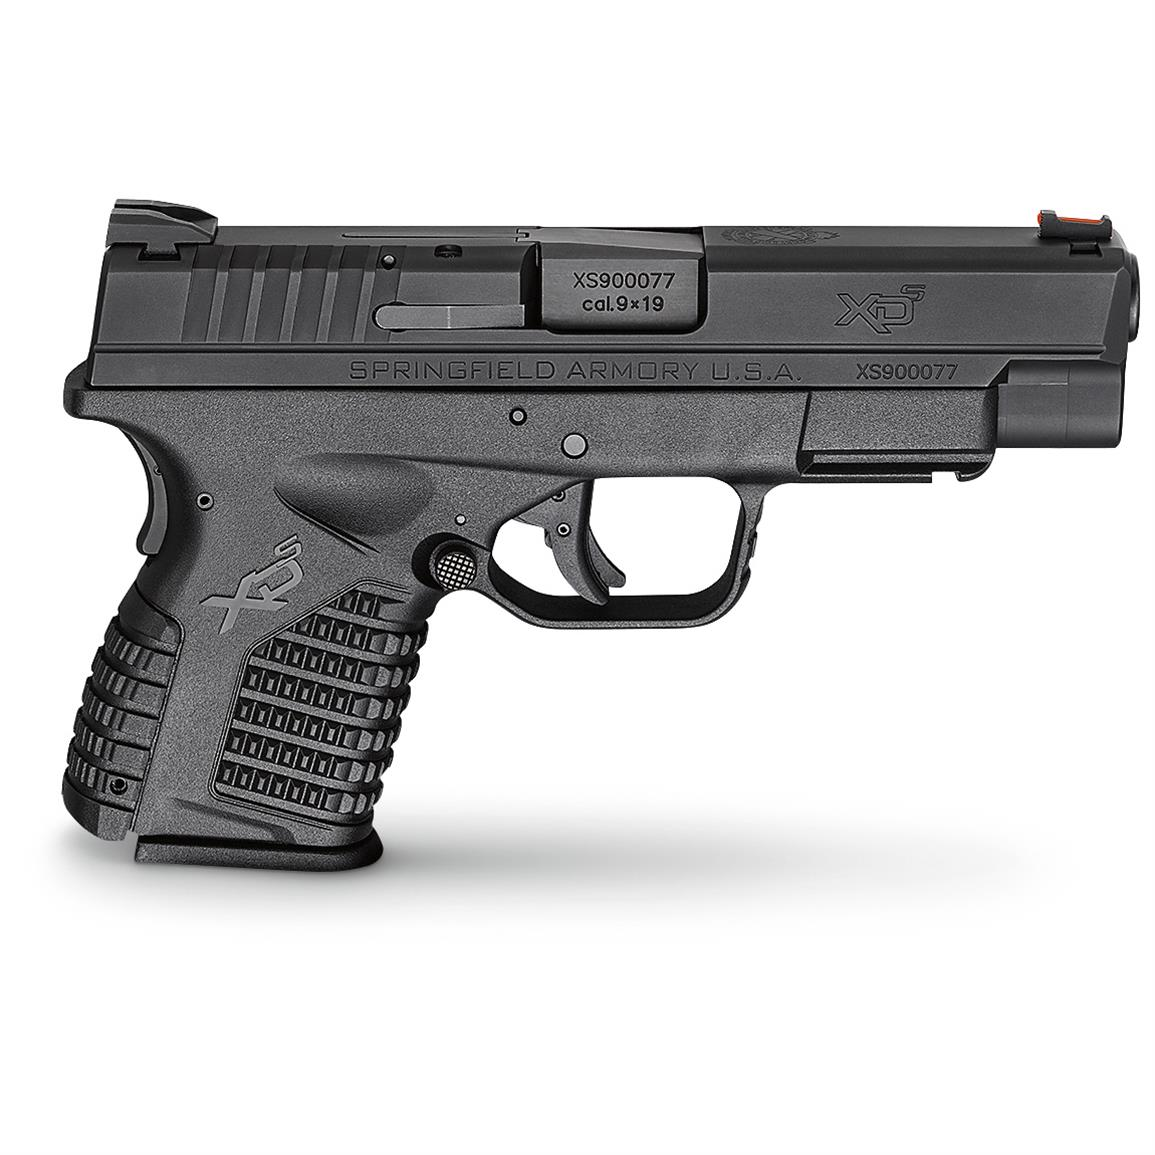 "Springfield XD-S Single Stack, Semi-automatic, 9mm, XDS9409BE, 706397899912, 4"" Barrel, with Essentials Package"